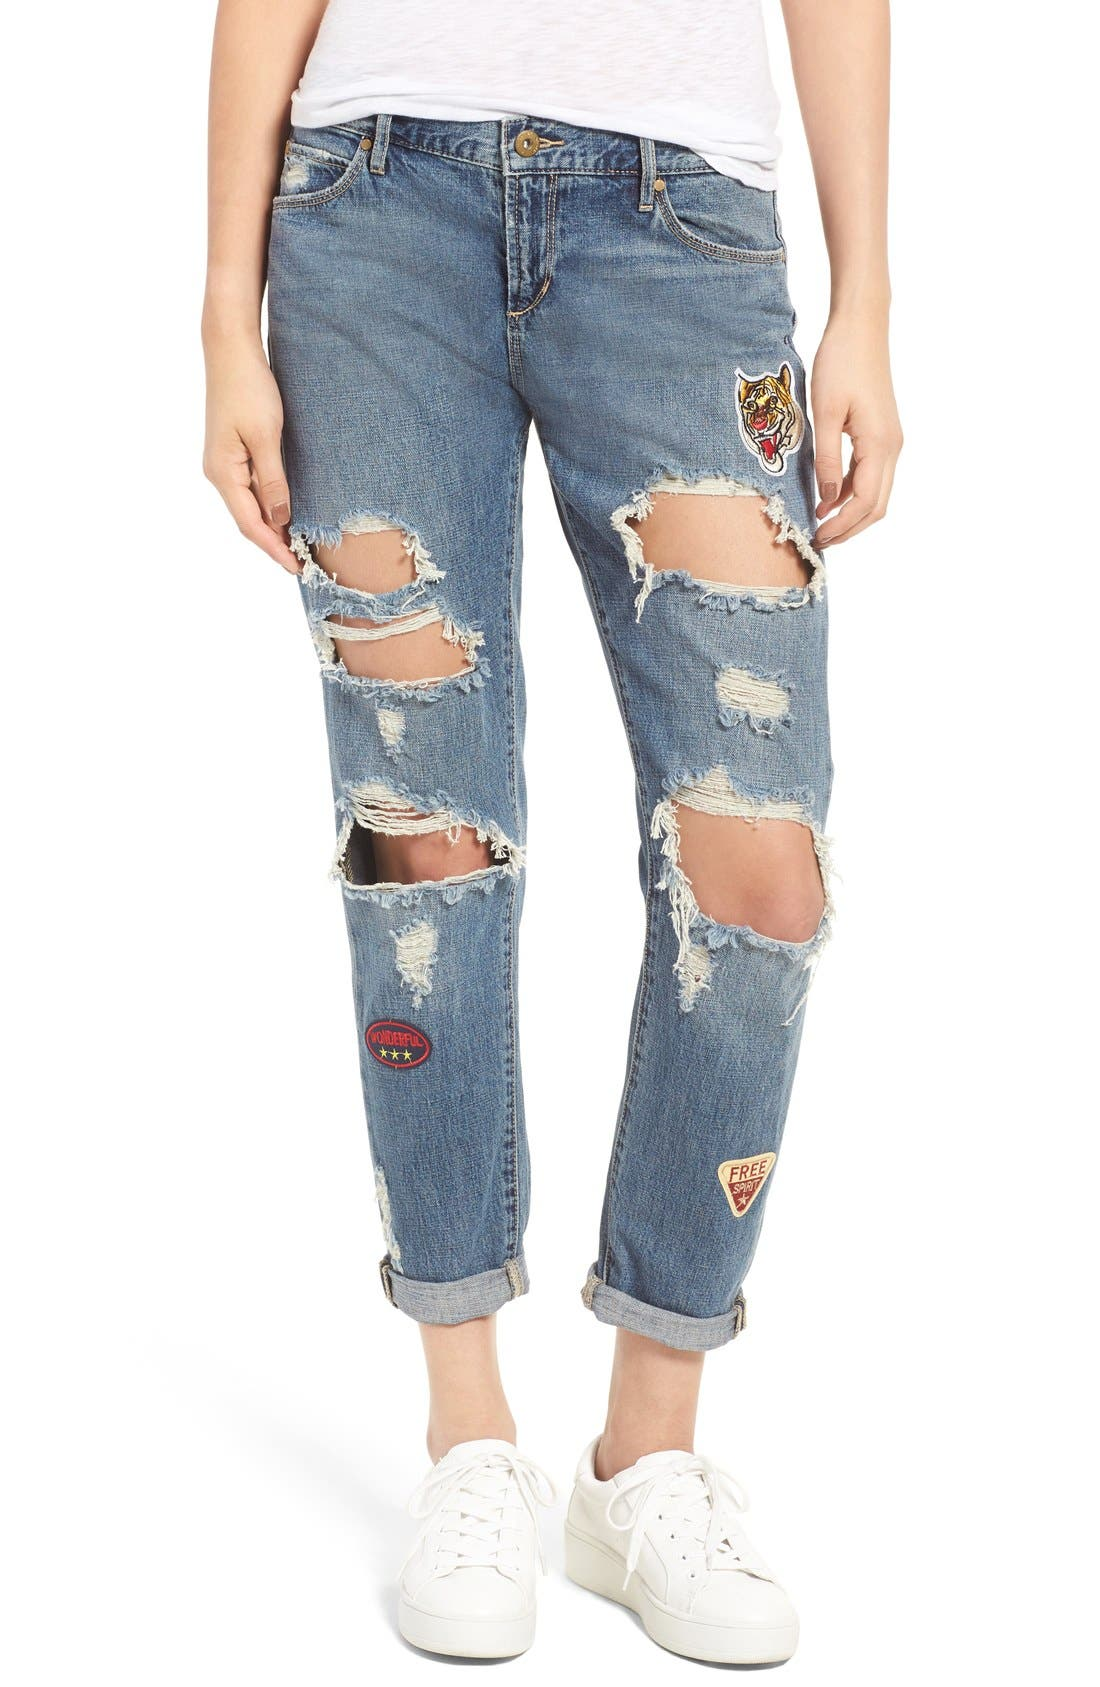 Alternate Image 1 Selected - Articles of Society Janis Destroyed Boyfriend Jeans with Patches